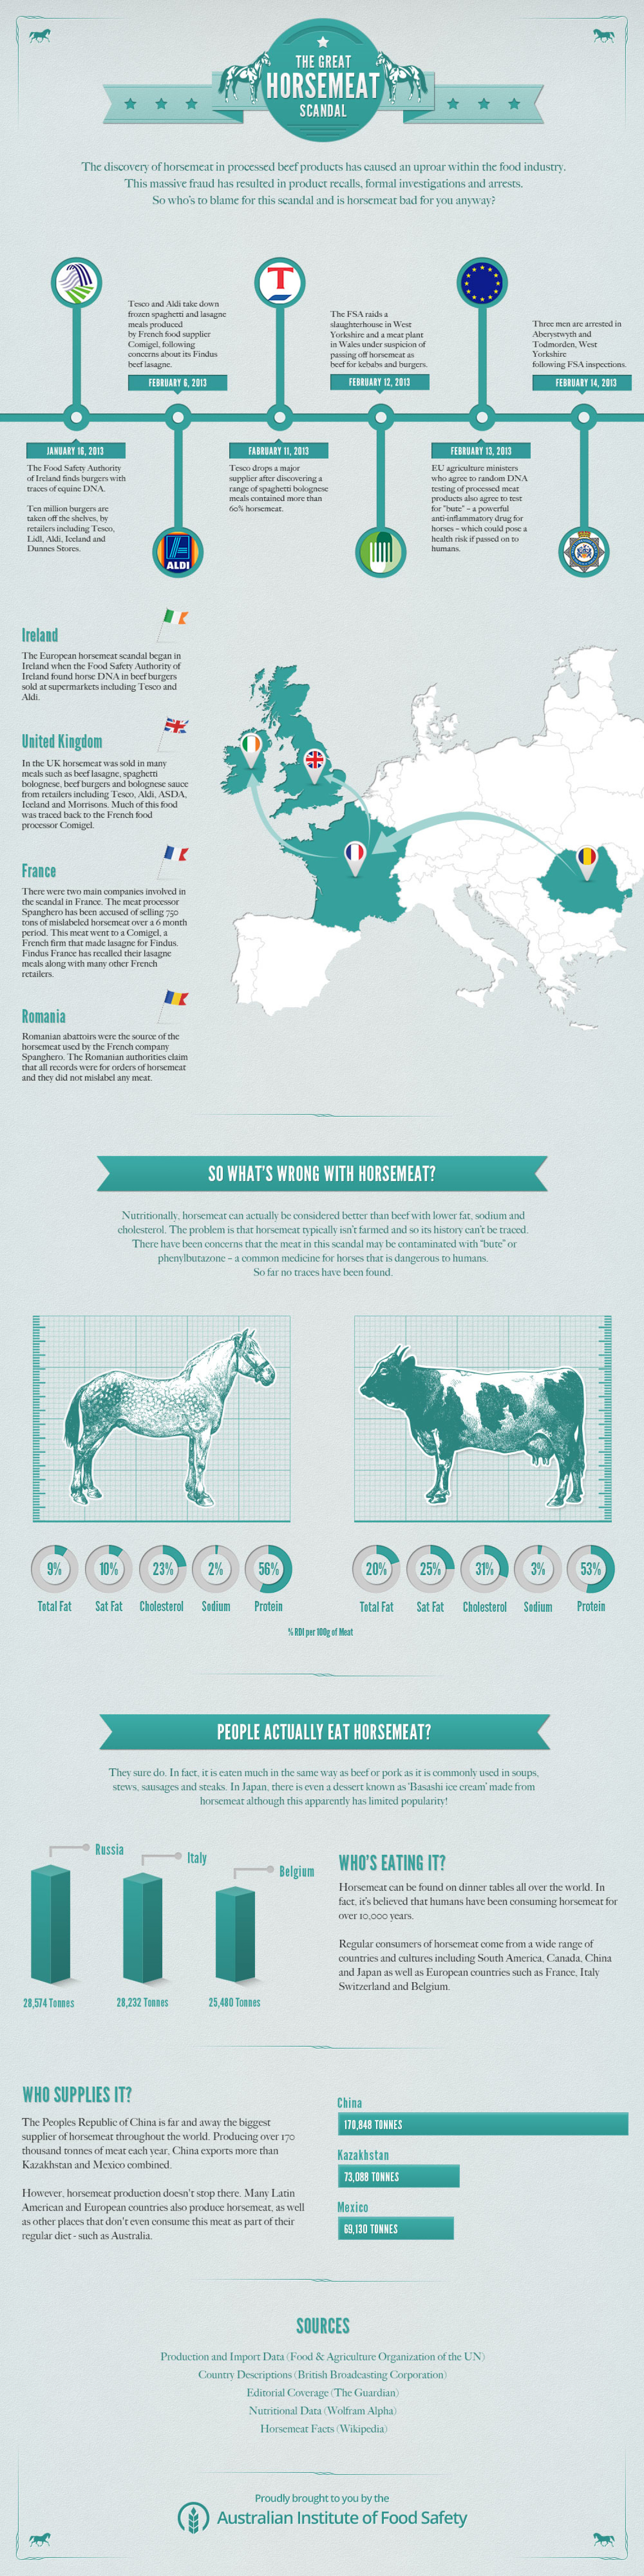 The Great Horsemeat Scandal Infographic